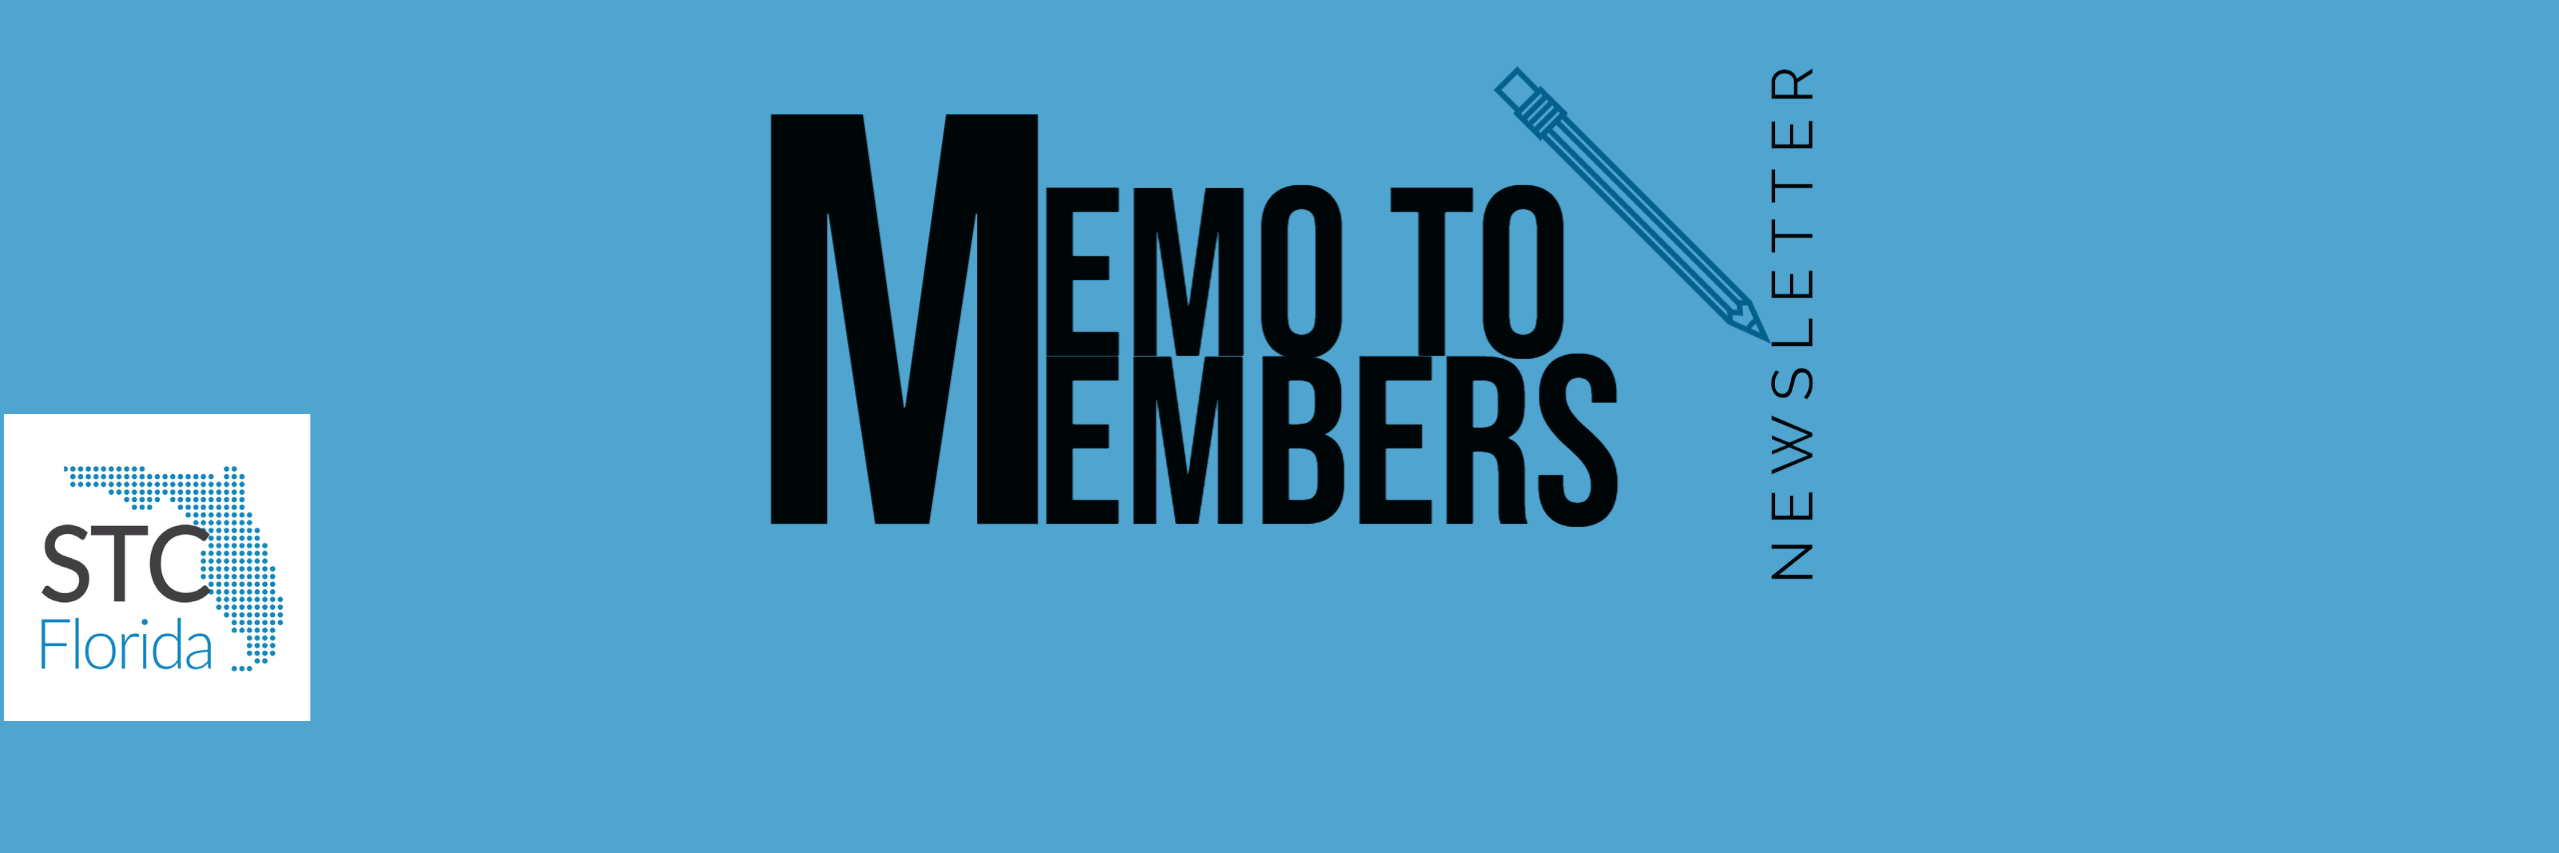 Jumpstart Your Active Membership by Winning Our New Member Campaign!